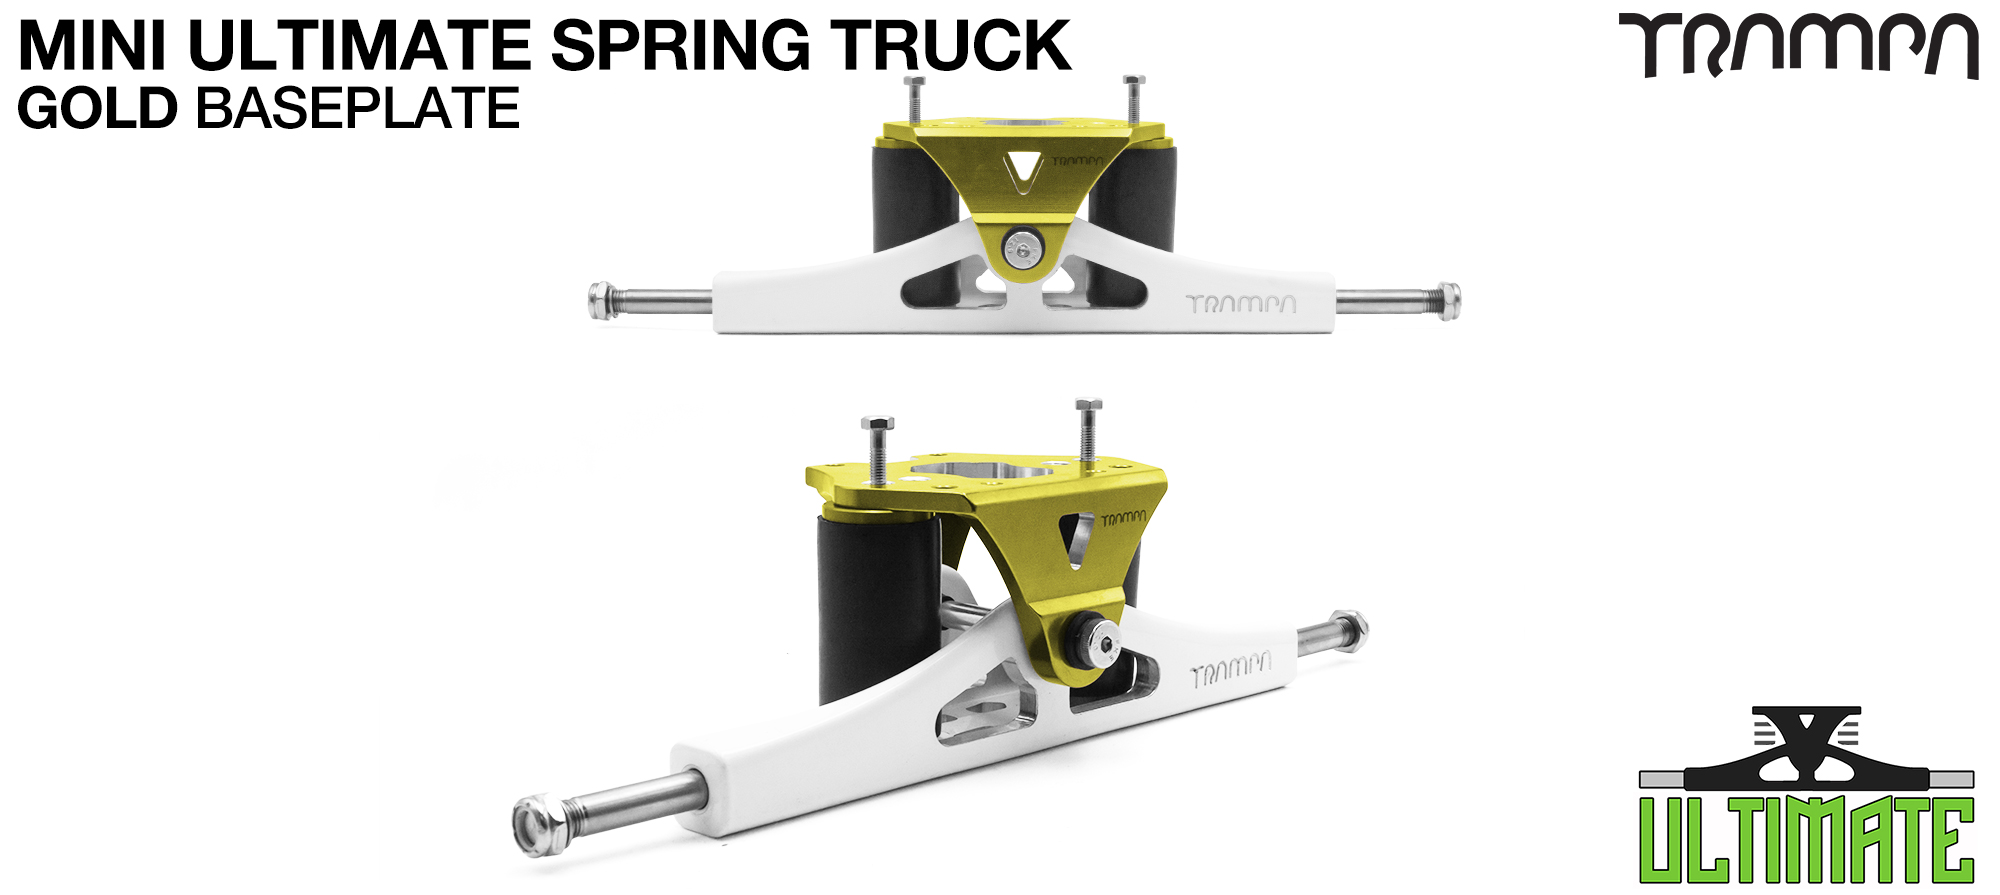 Mini ULTIMATE TRAMPA TRUCKS - CNC FORGED Channel Hanger with 9.525mm TITANIUM Axle CNC Baseplate TITANIUM Kingpin - GOLD